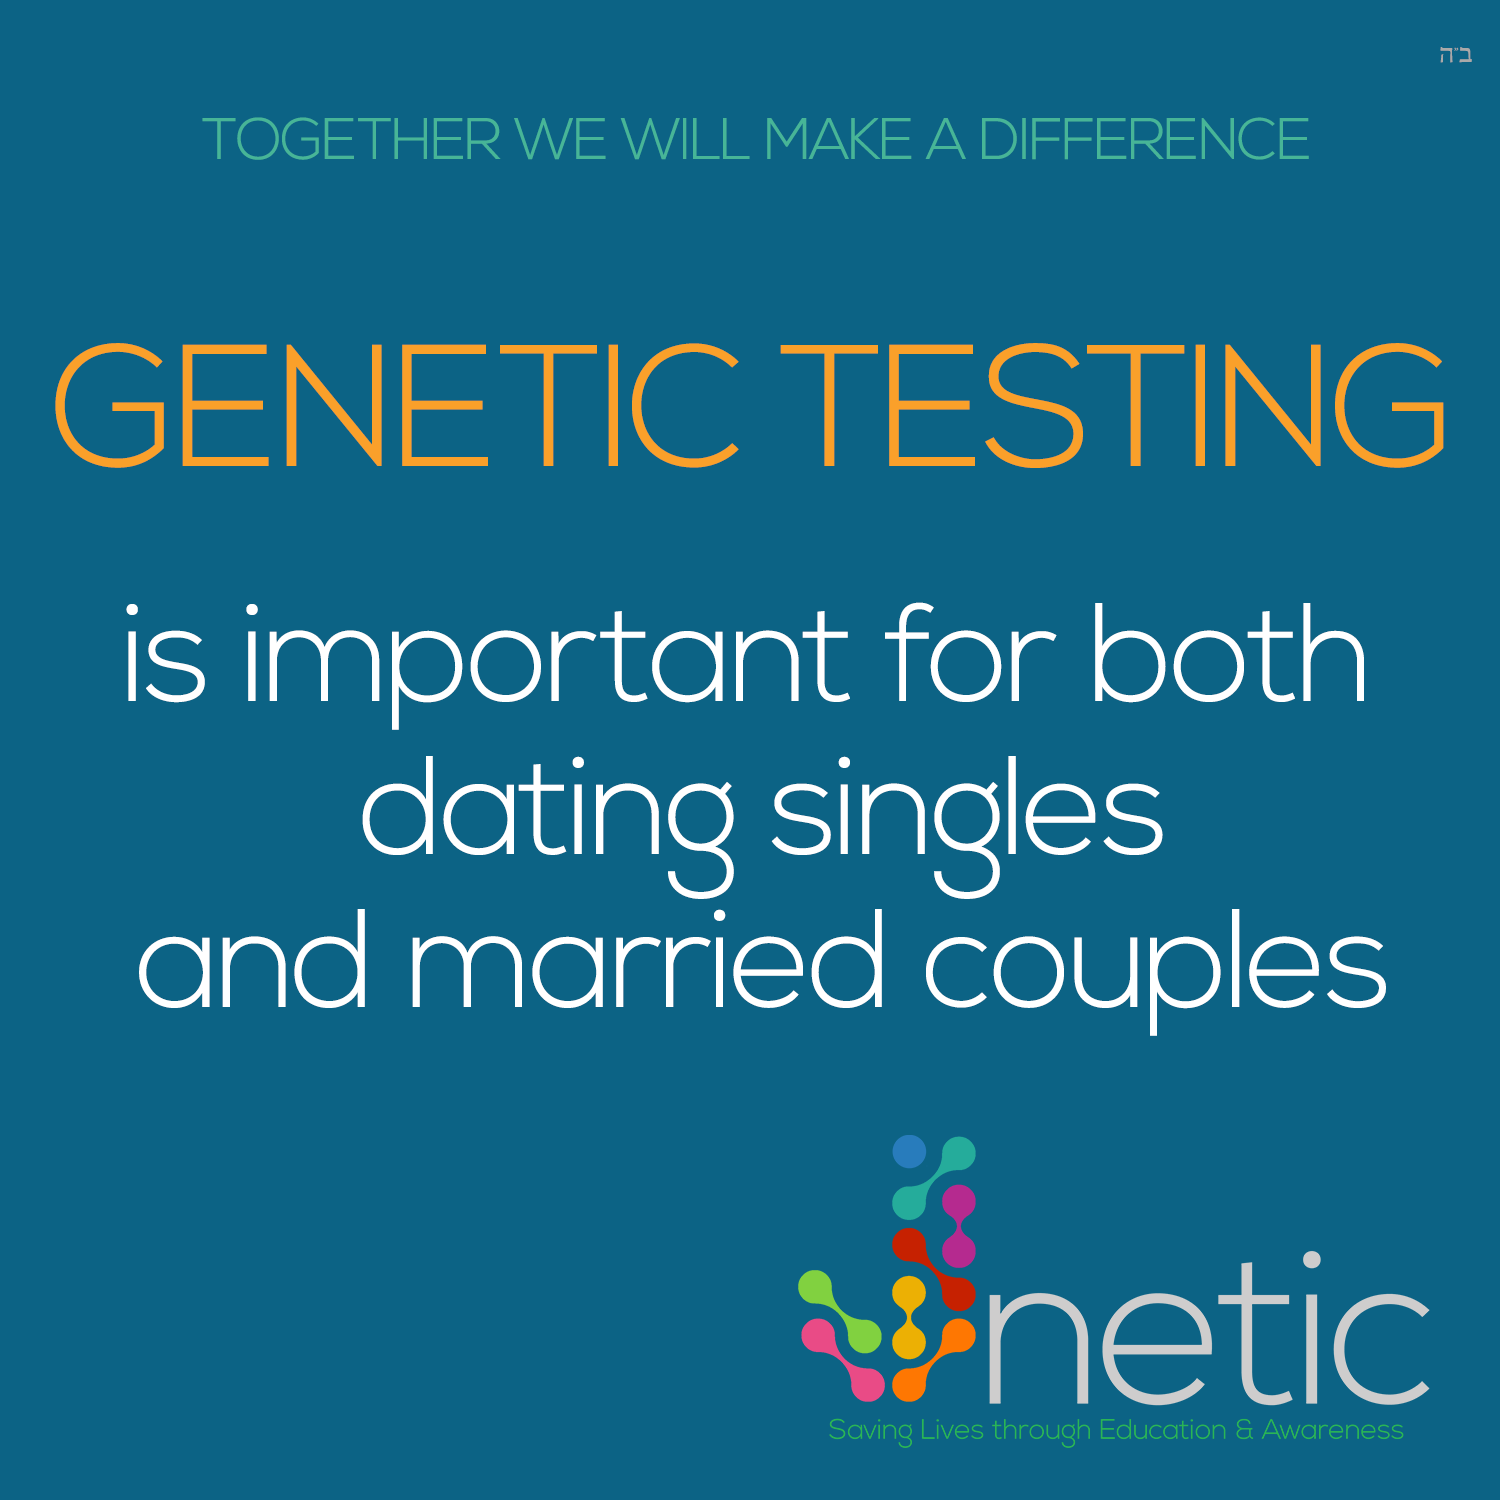 Genetic Fact - Genetic testing is needed for single people dating and couples